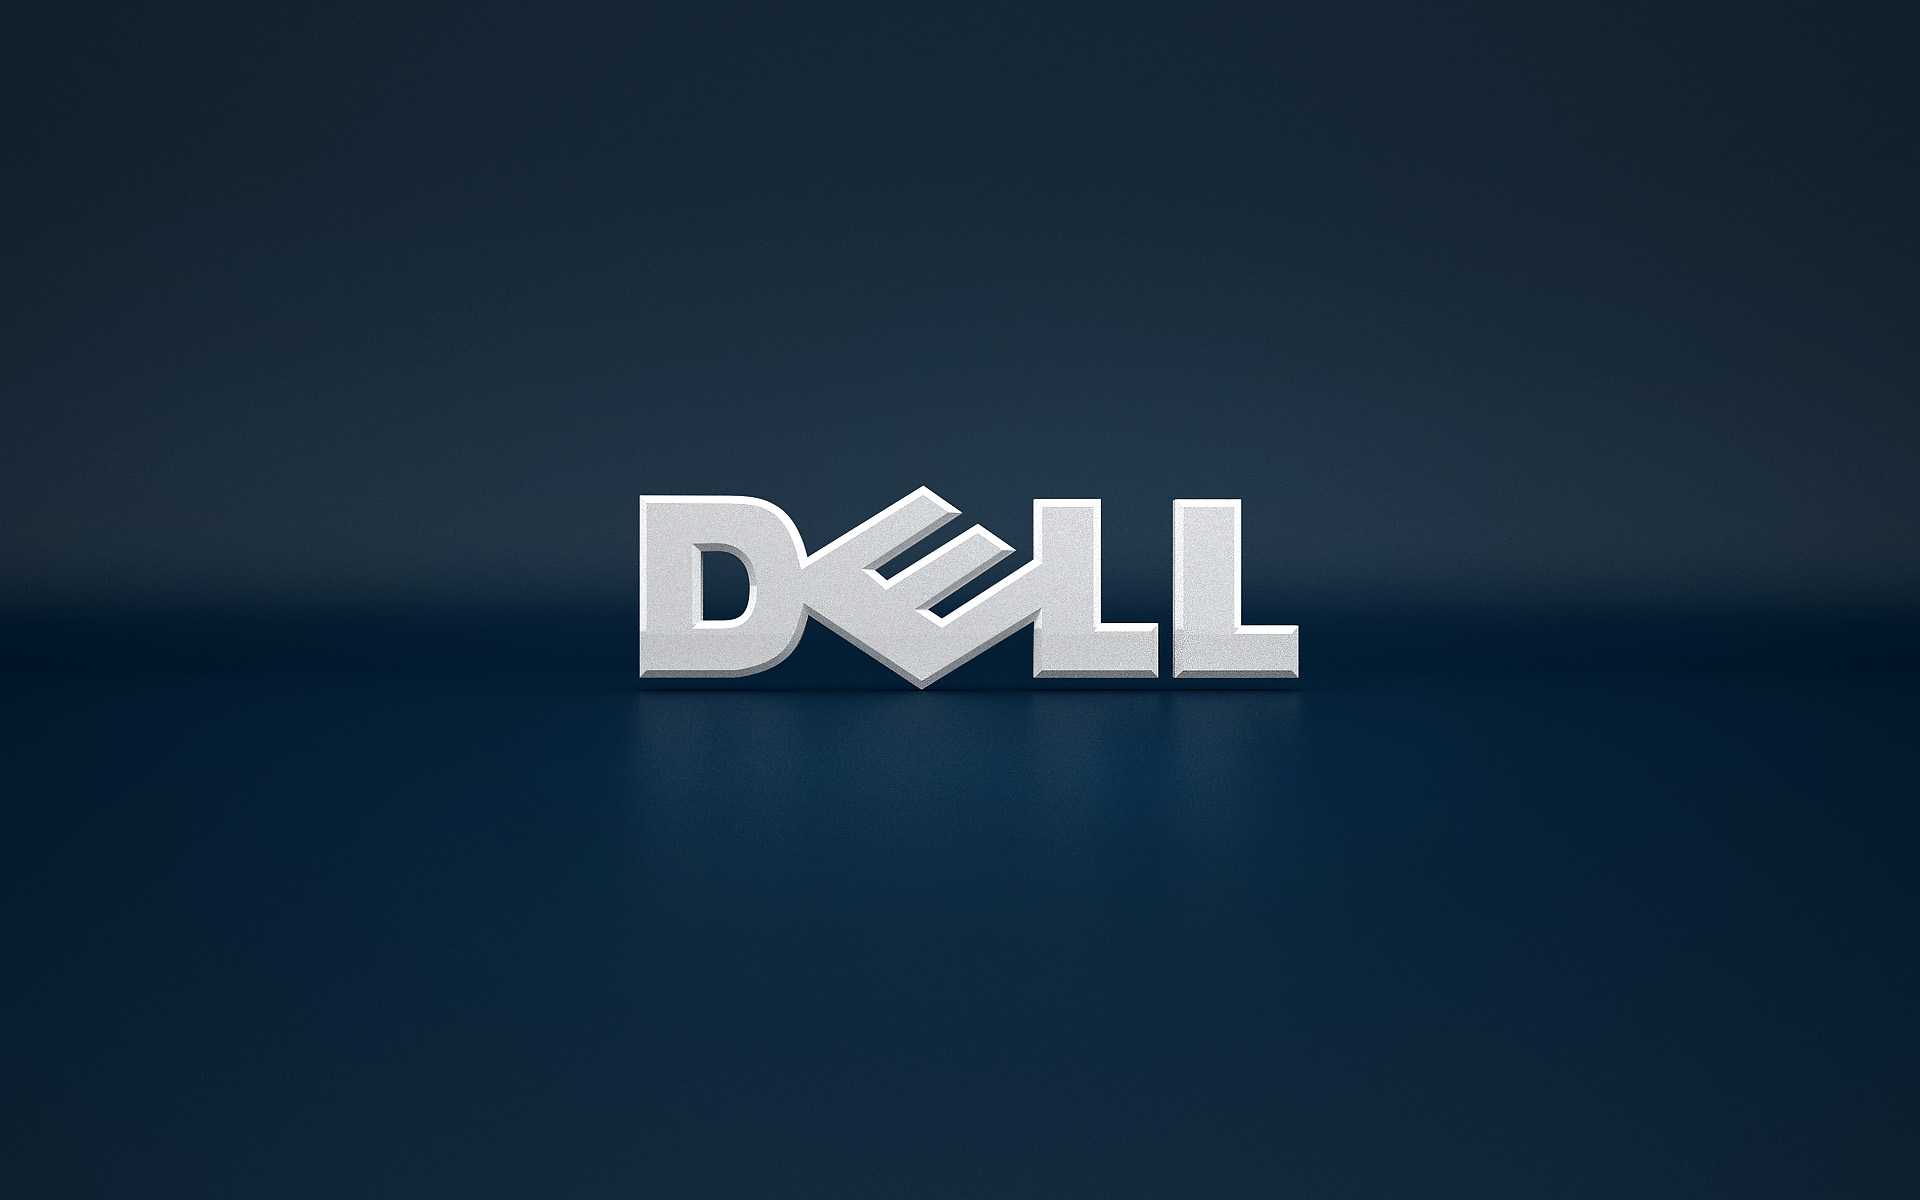 Buy Dell Laptop Computers Desktop Dell Mac Background Computers 1920x1200